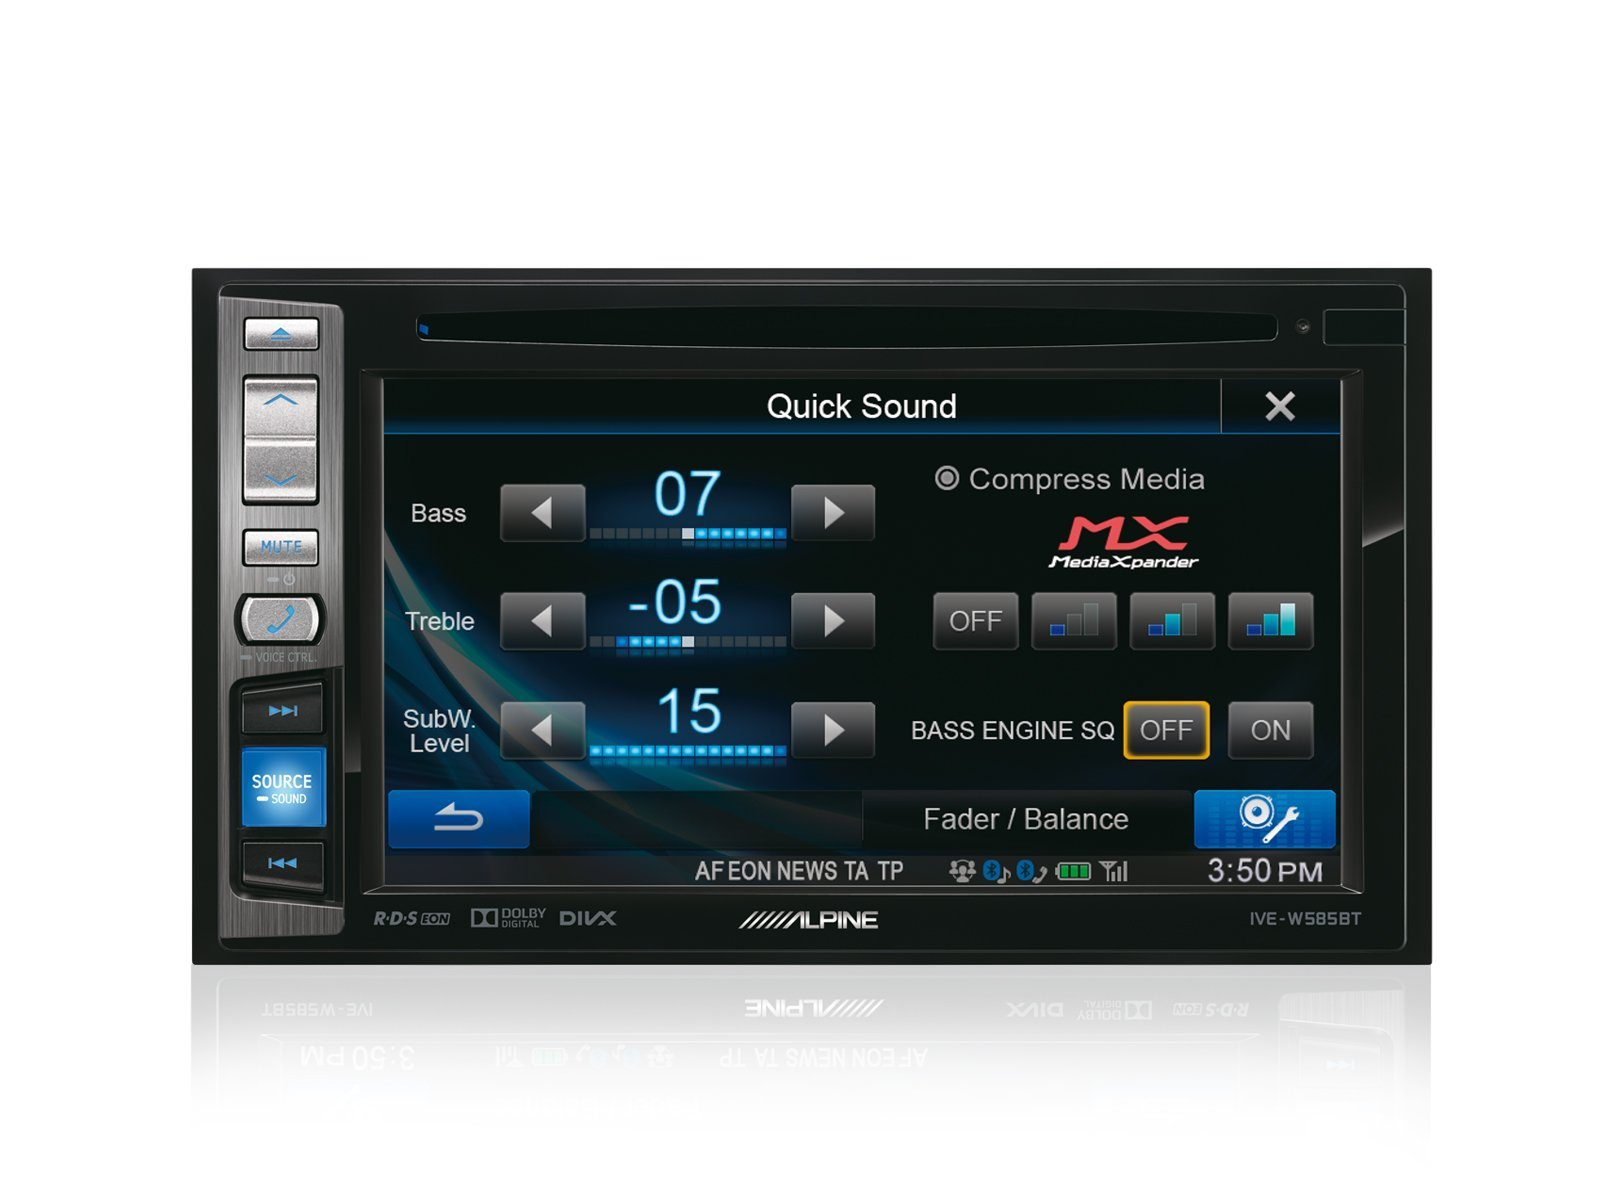 ALPINE 2 DIN - Mobile-Media-Station »IVE-W585BT«